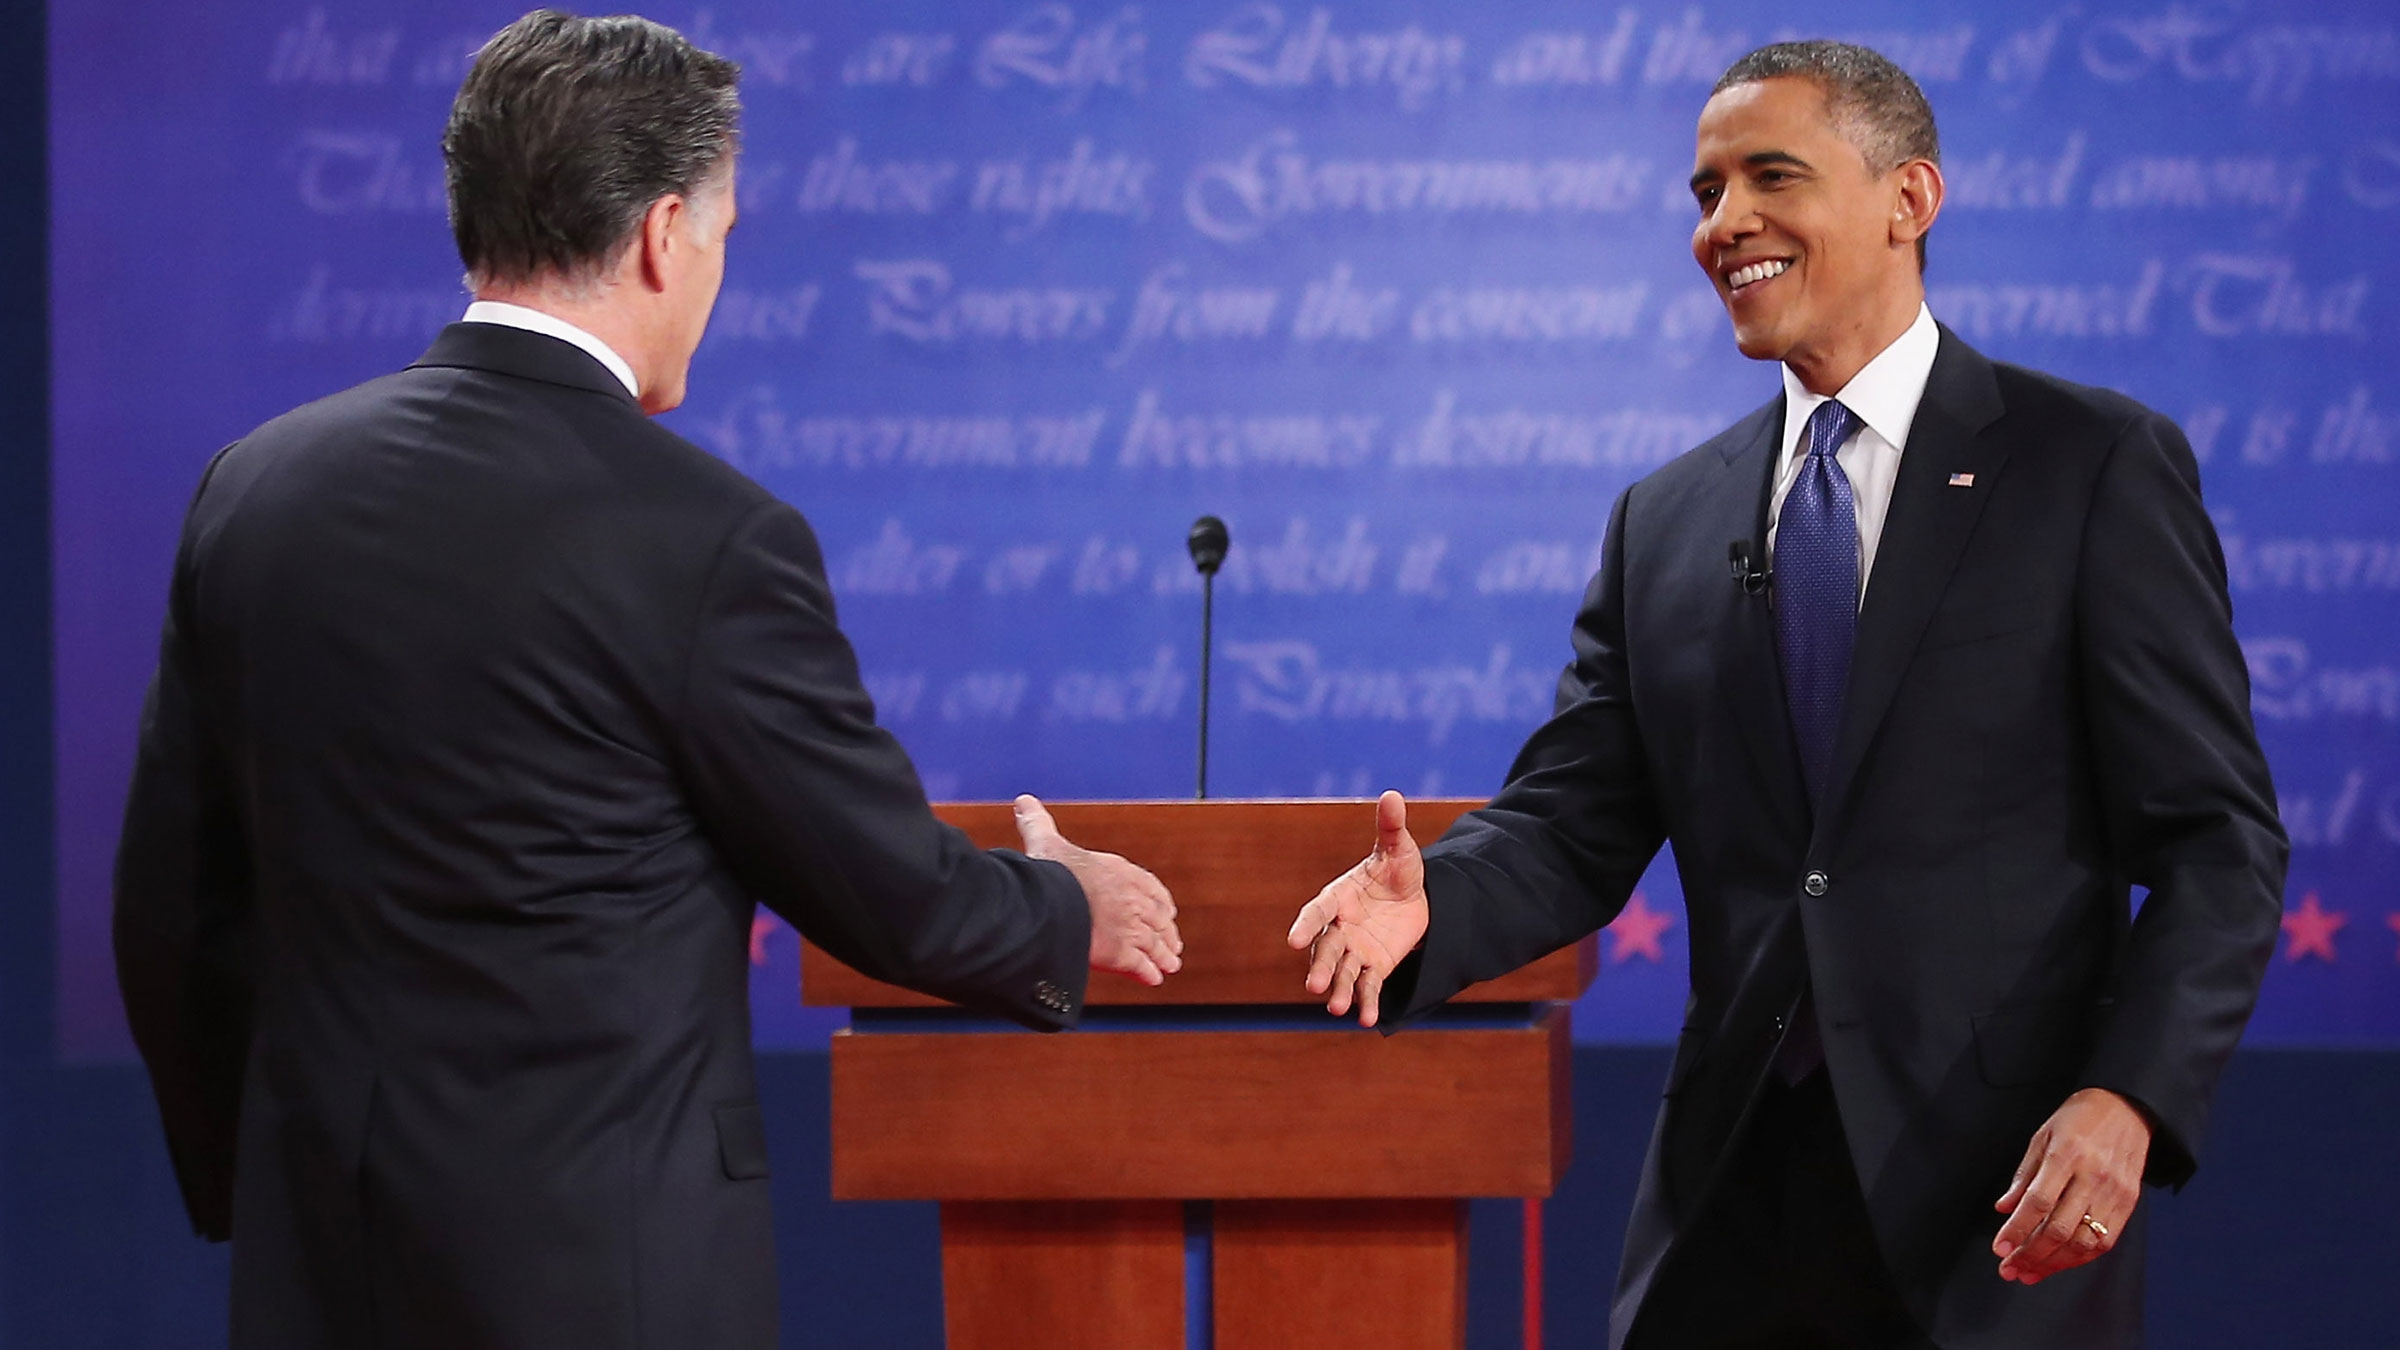 In Romney or Obama presidential term, big bank regulations would be similar